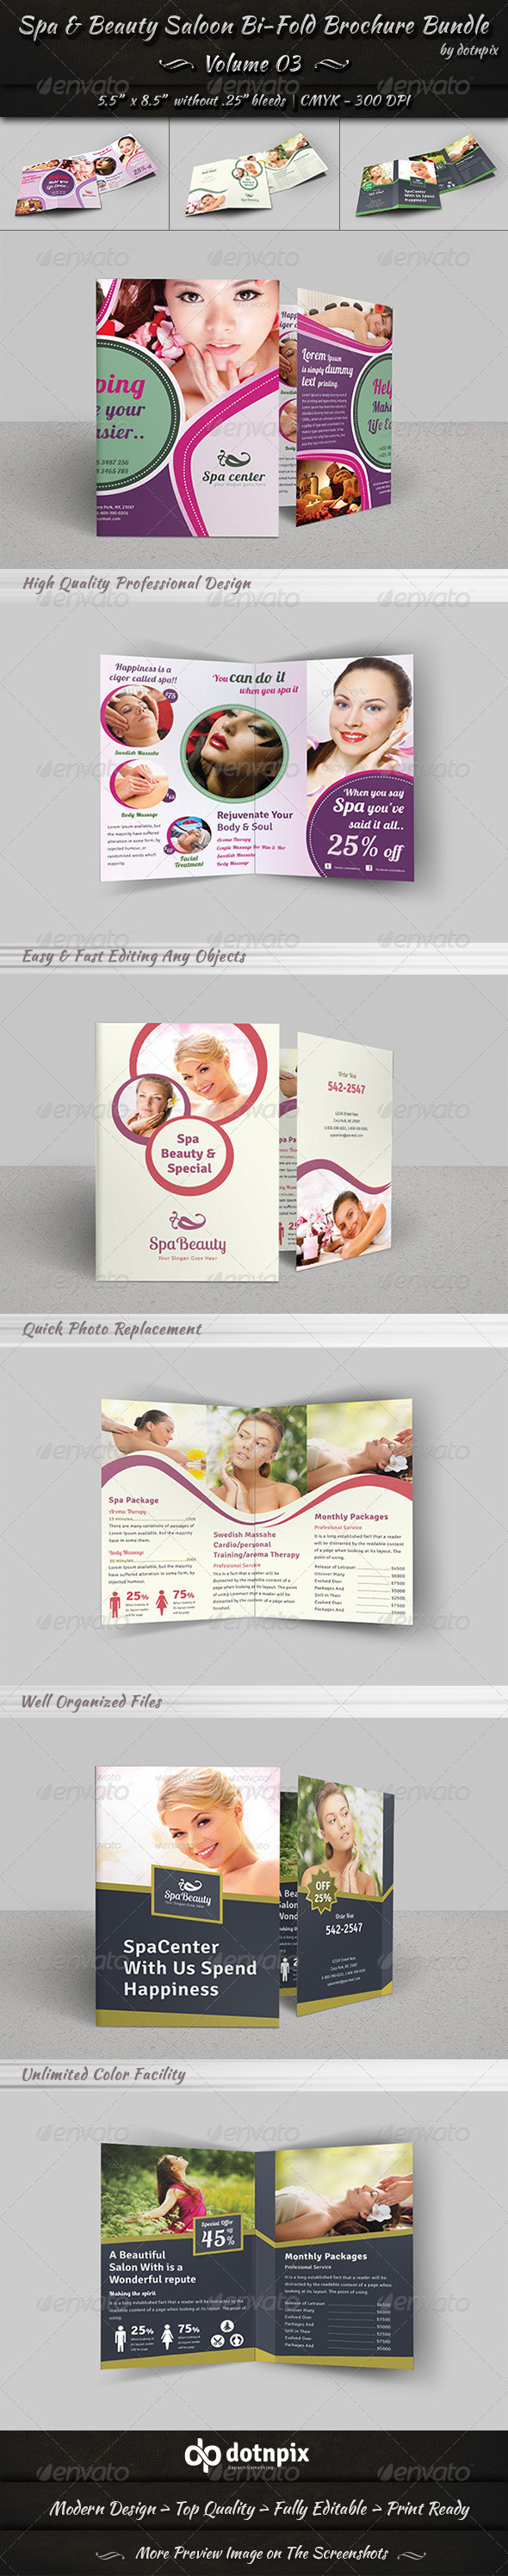 GraphicRiver Spa & Beauty Saloon Bi-Fold Brochure Bundle v3 8184478